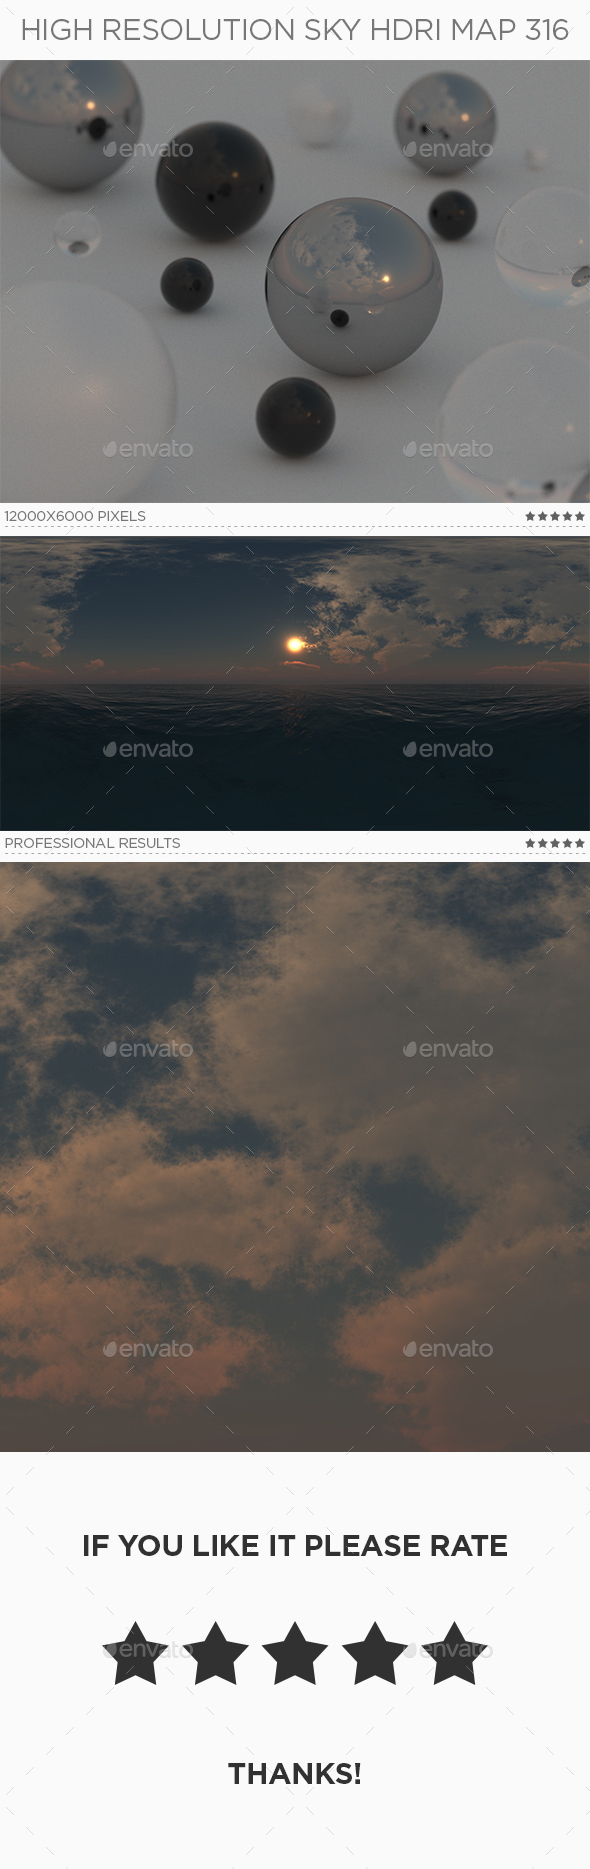 High Resolution Sky HDRi Map 316 - 3DOcean Item for Sale